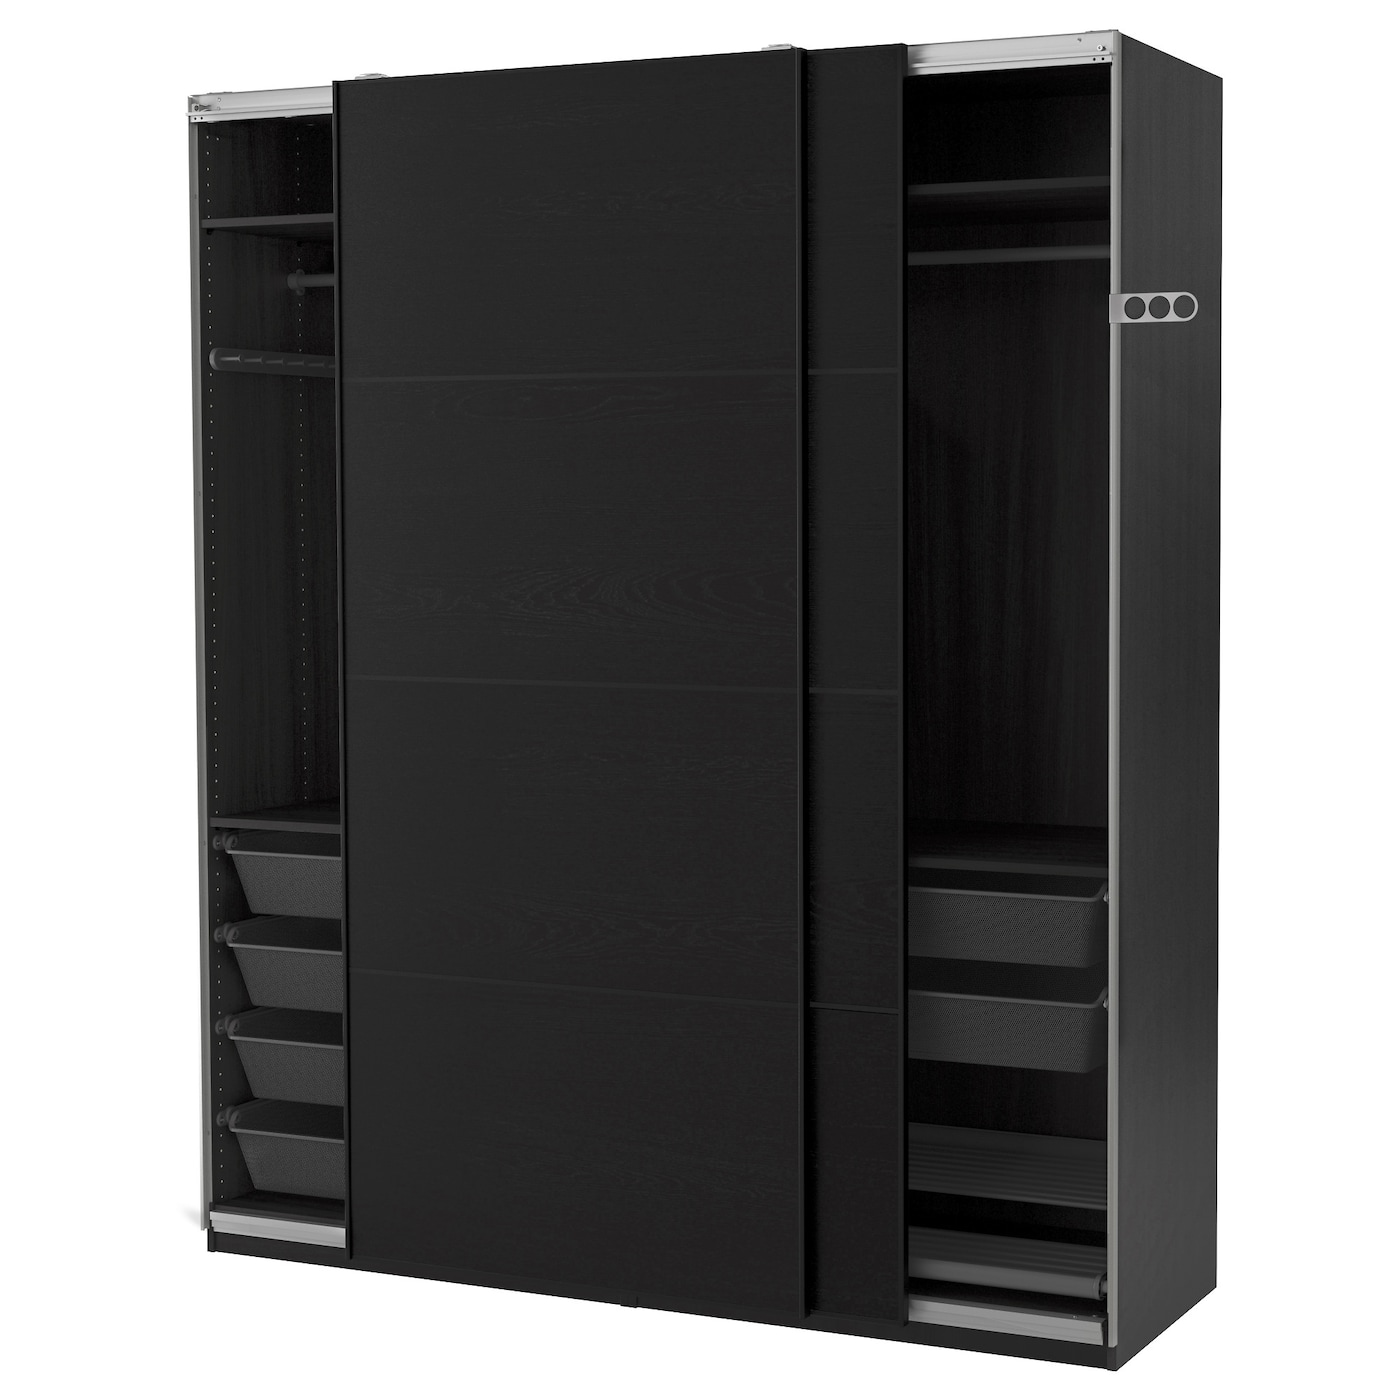 pax armoire penderie brun noir ilseng brun noir 200 x 66 x 236 cm ikea. Black Bedroom Furniture Sets. Home Design Ideas